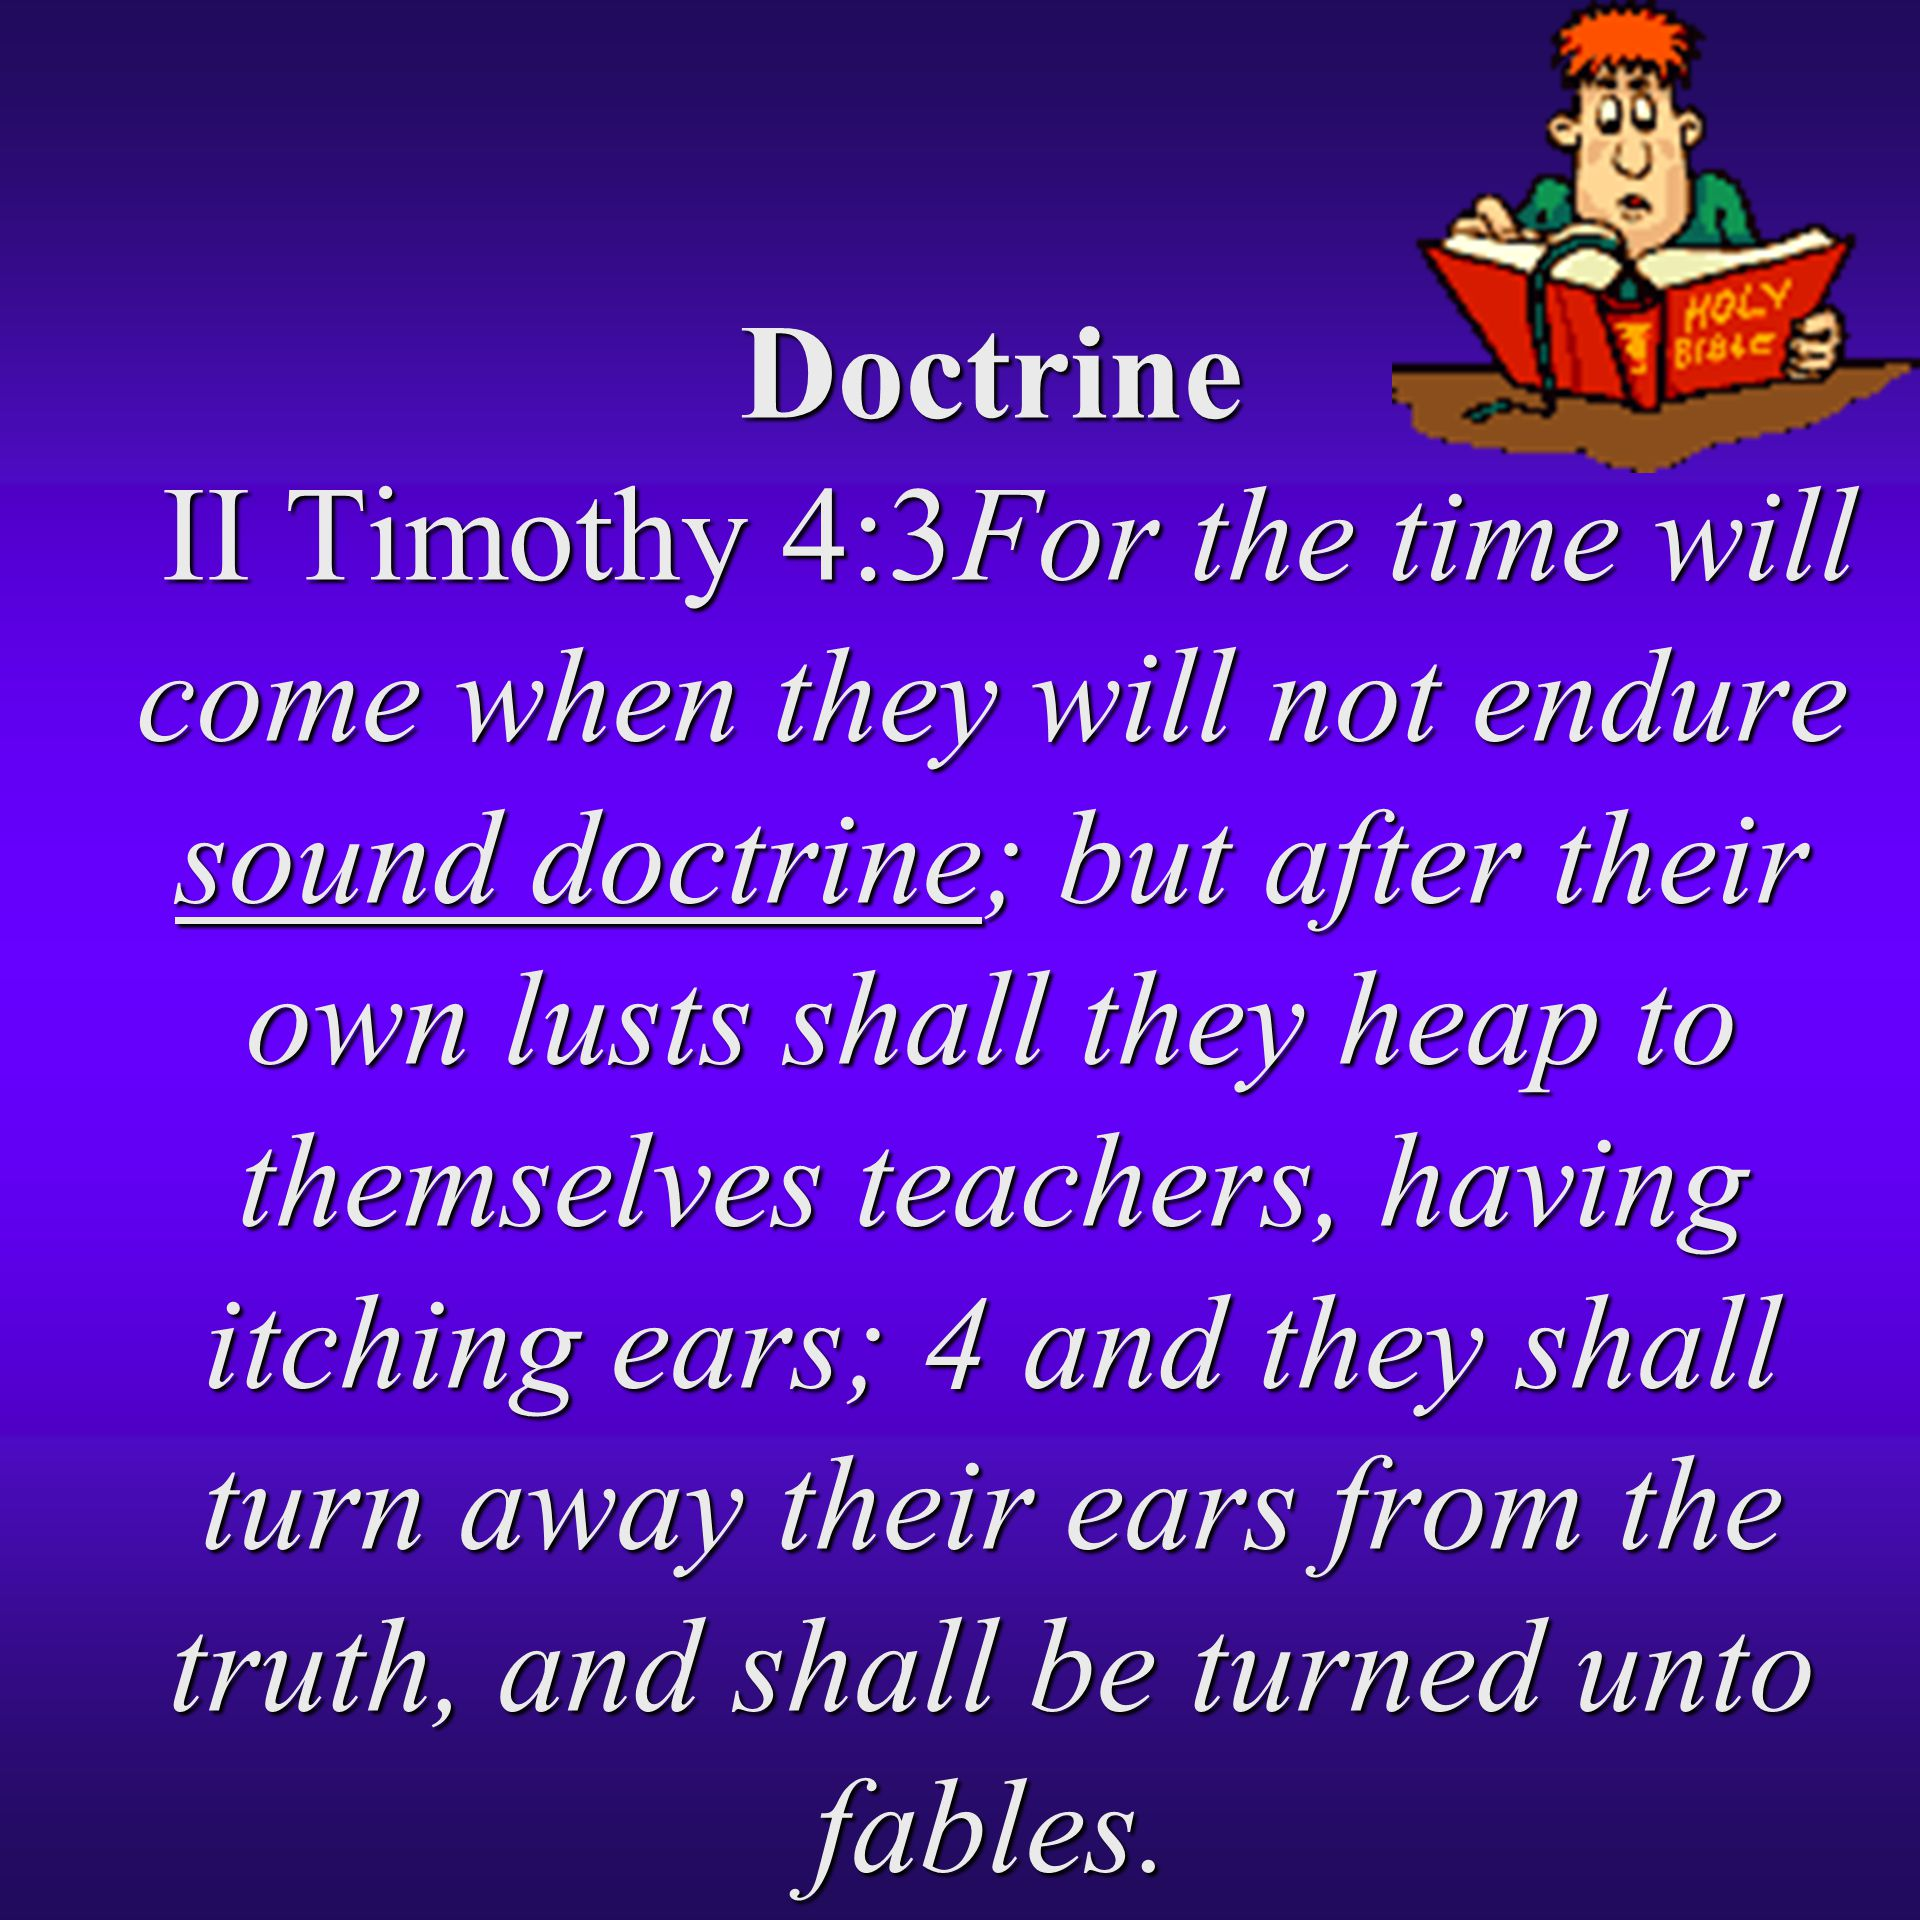 Doctrine II Timothy 4:3For the time will come when they will not endure sound doctrine; but after their own lusts shall they heap to themselves teachers, having itching ears; 4 and they shall turn away their ears from the truth, and shall be turned unto fables.